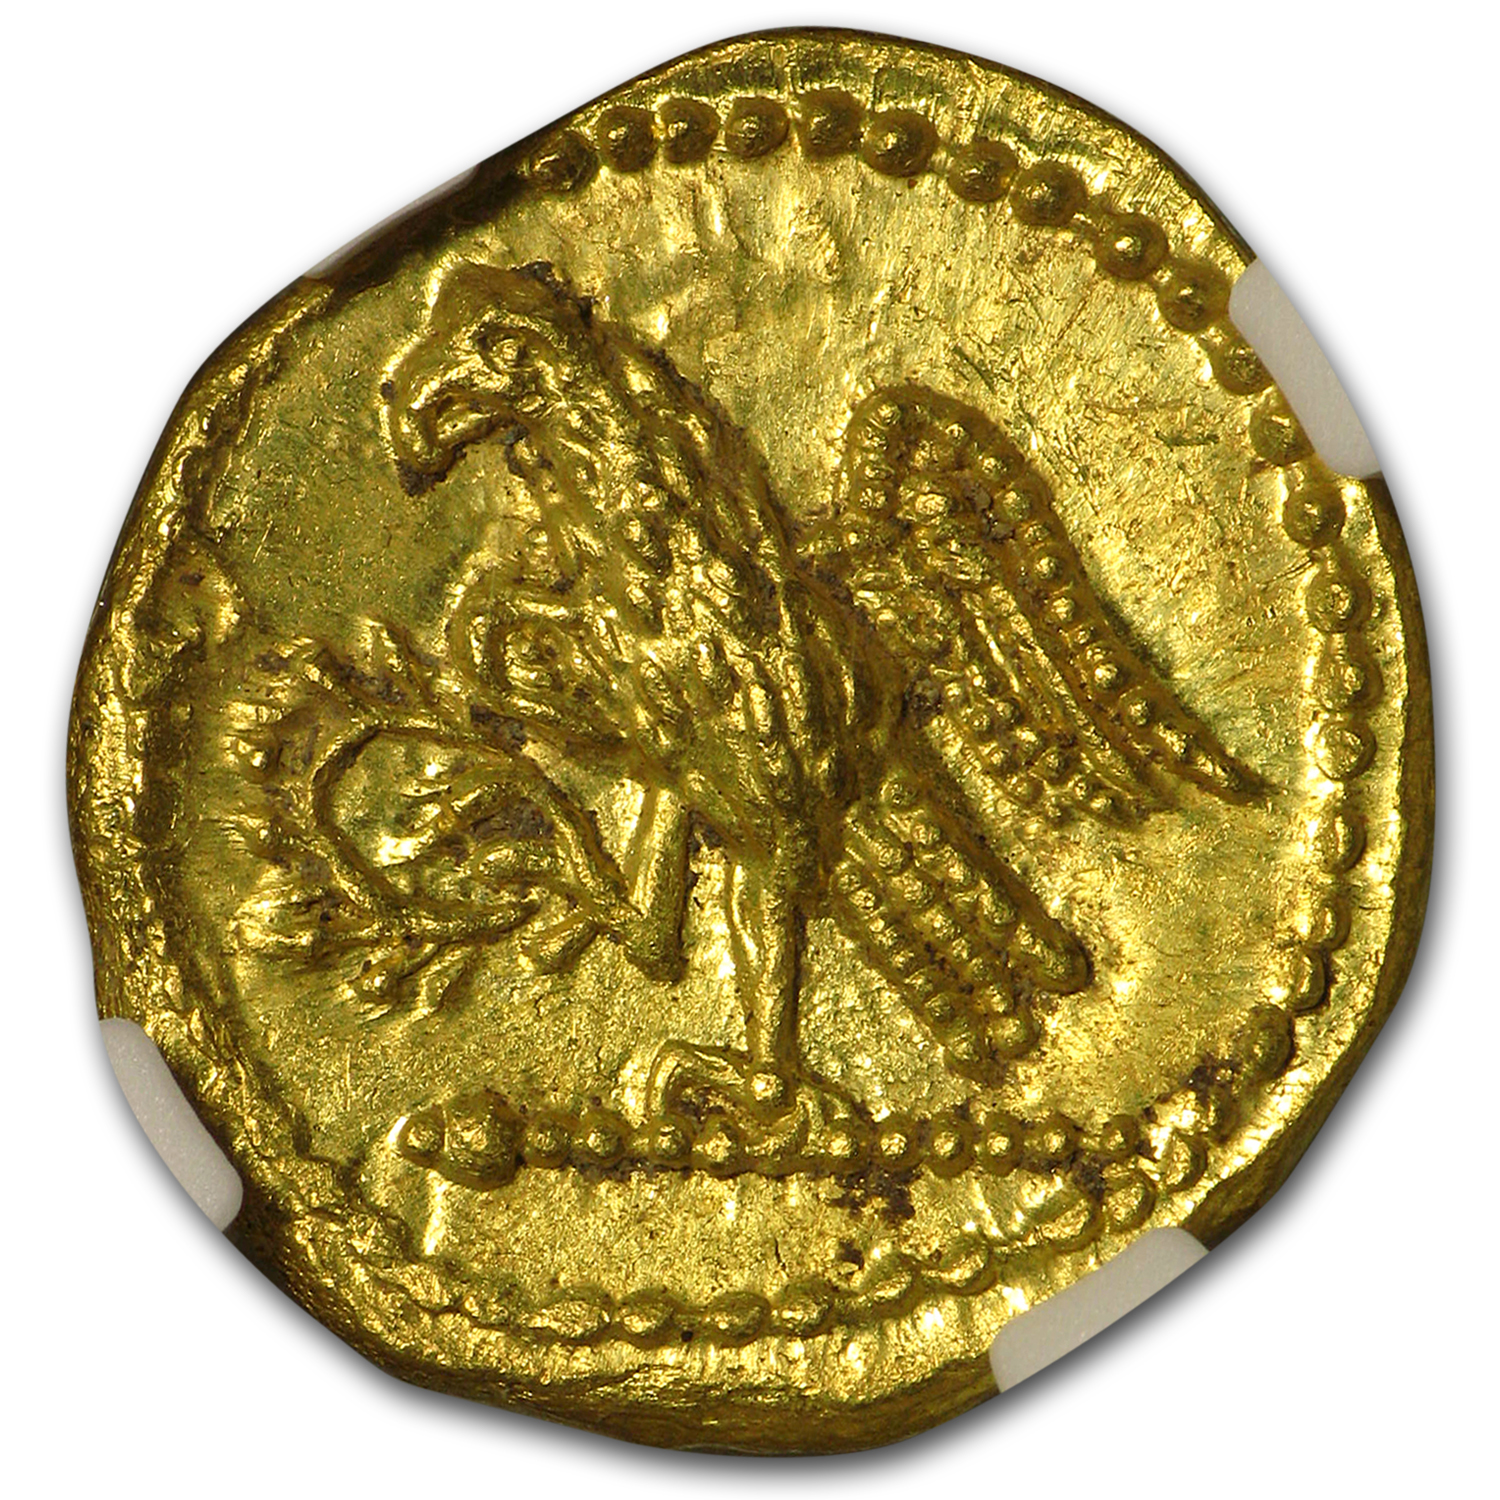 Thracian/Scythian Gold Stater w/Monogram (1st Cent. BC) CH MS NGC